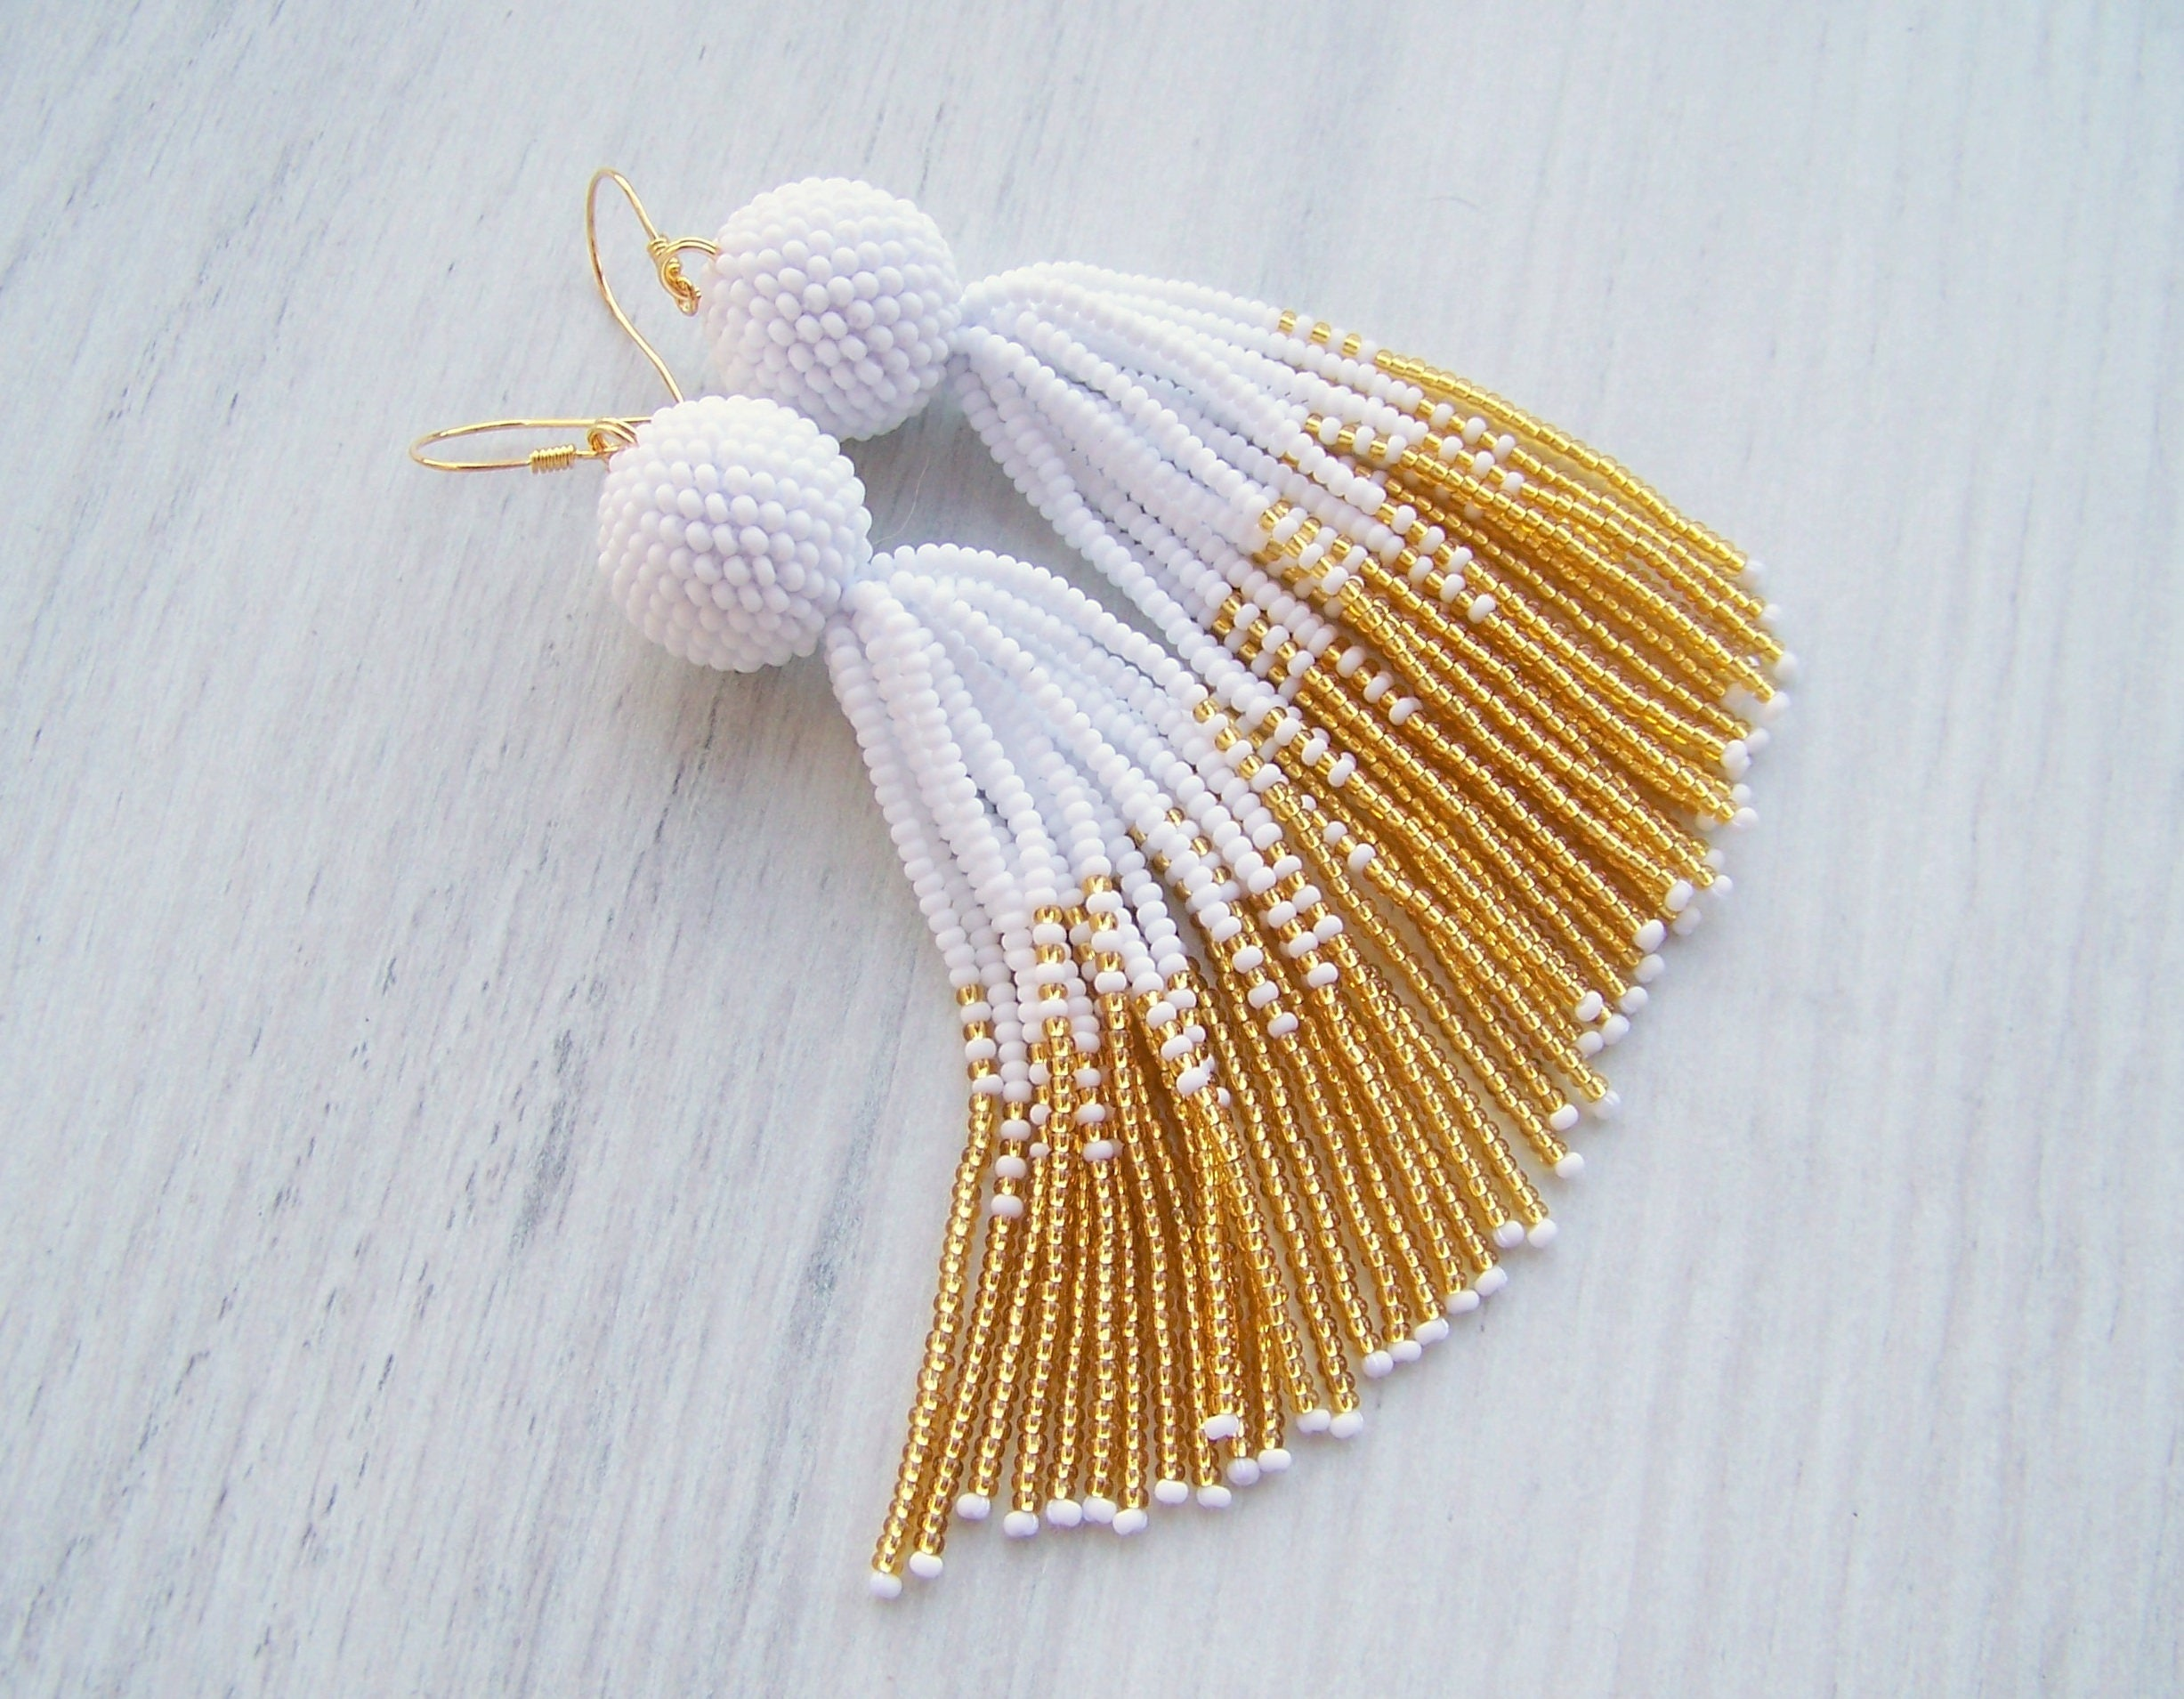 shop g products beaded earring and ruby stella earrings all wht white tassel